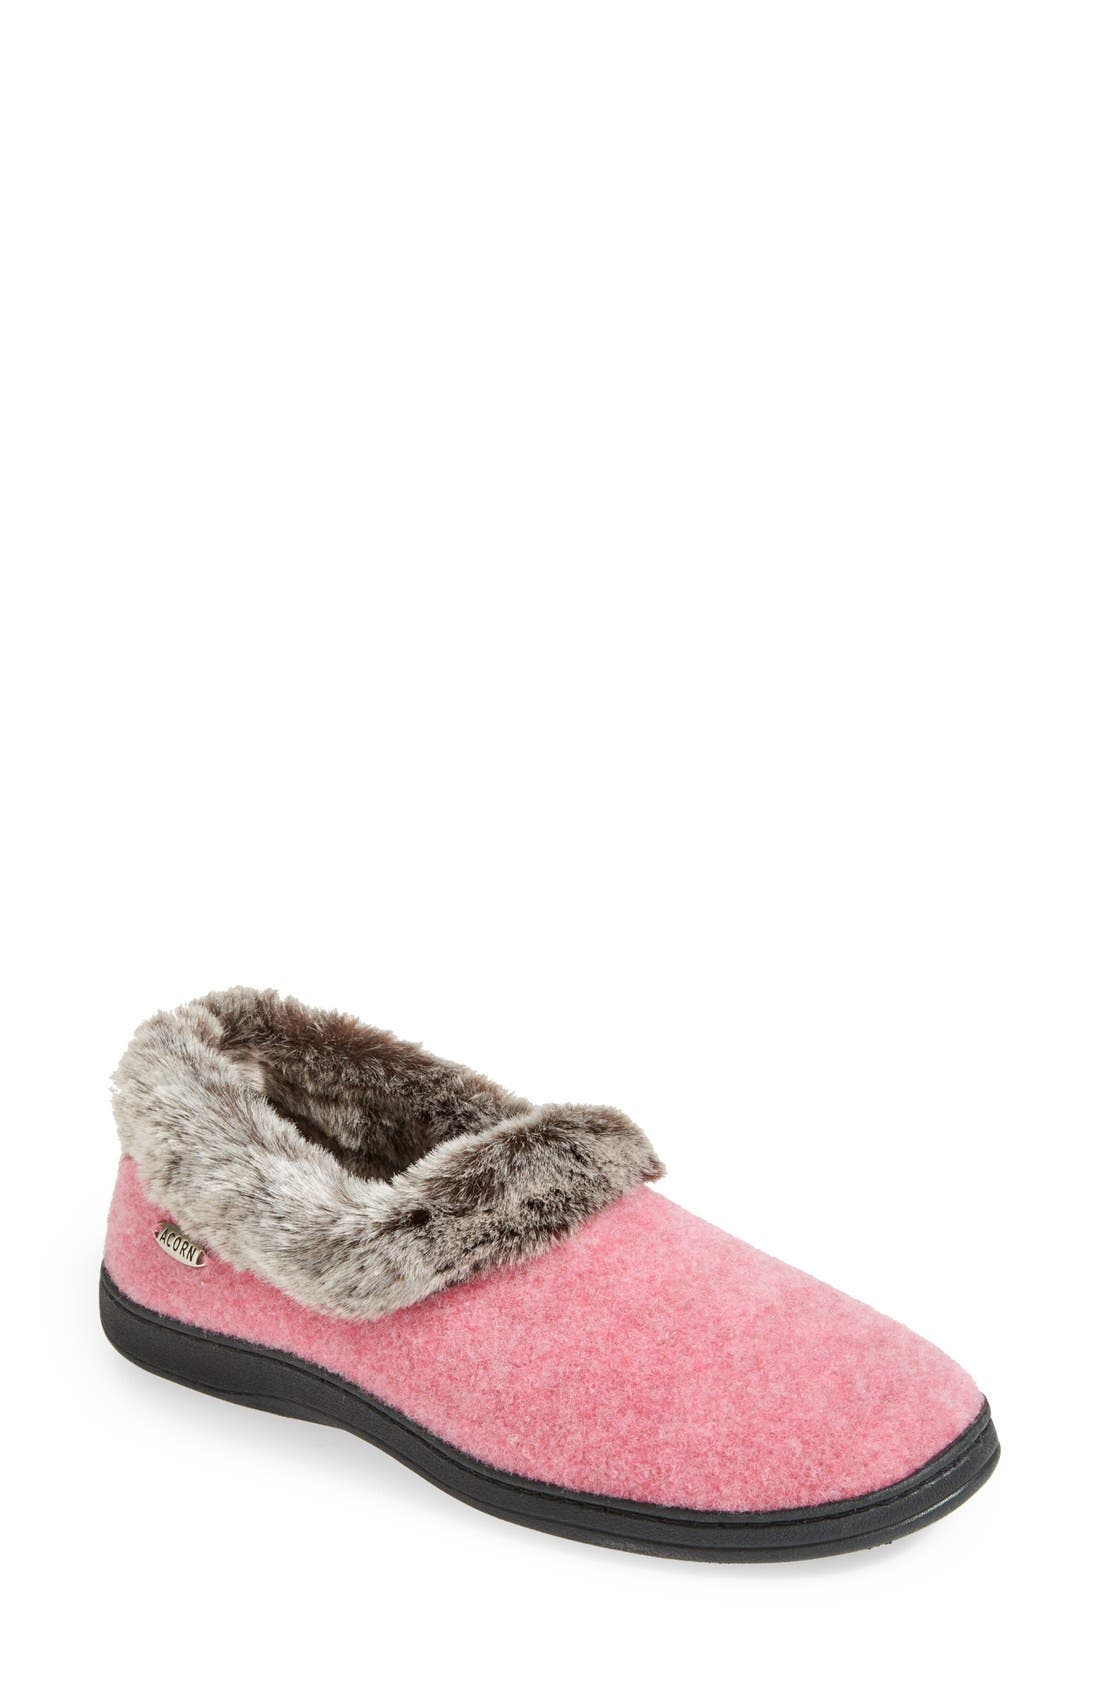 Main Image - Acorn 'Chinchilla Collar' Faux Fur Slipper (Women)